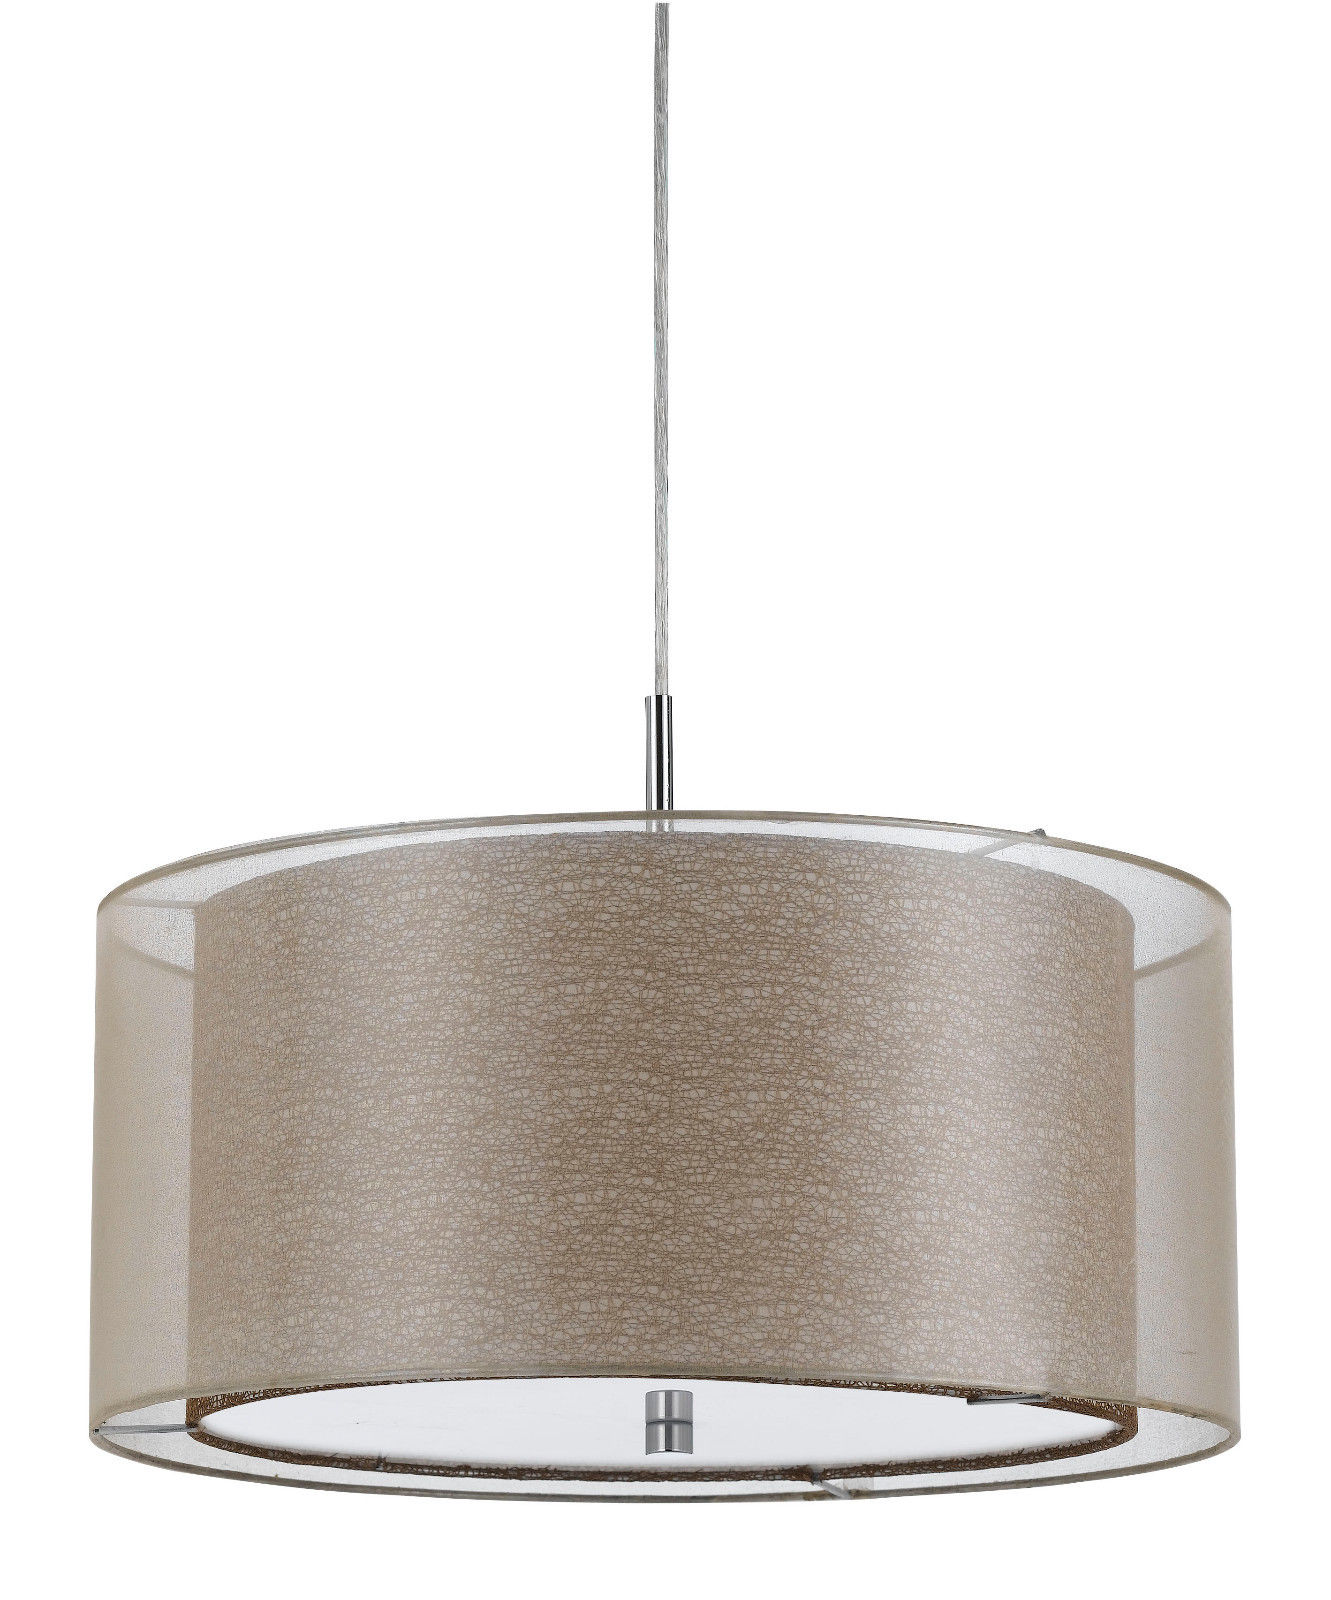 lamp light plug mica in round fx ceiling wide fixture pendant swag silver w drum cylinder chandelier barrel